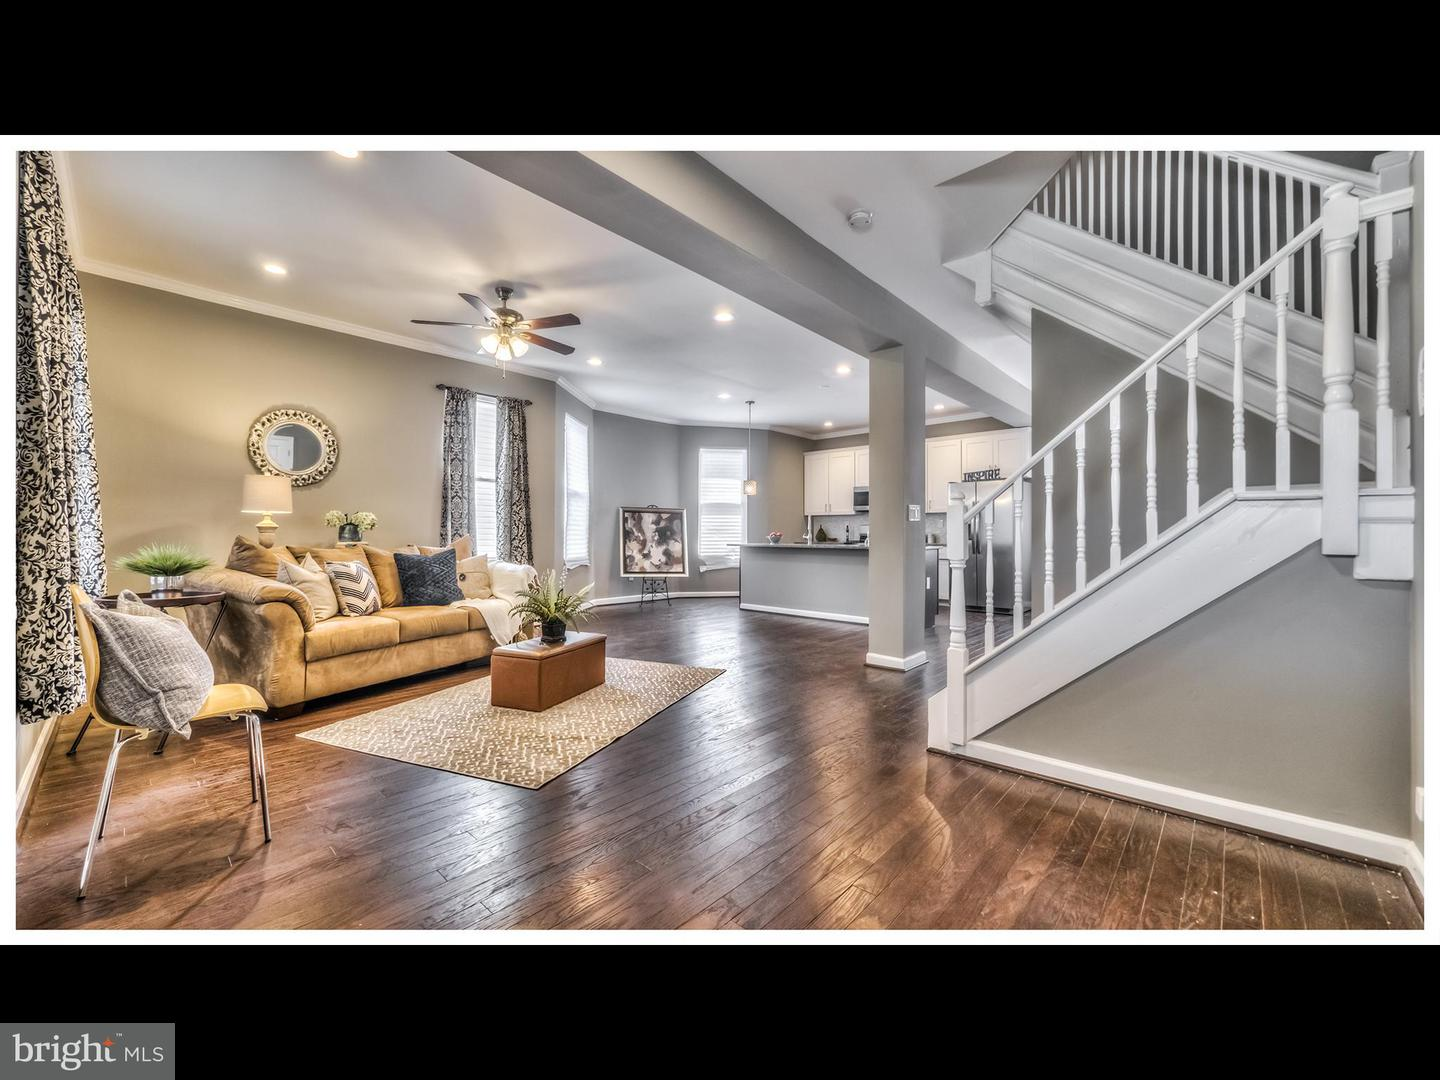 Single Family for Sale at 2602 Allendale Rd Baltimore, Maryland 21216 United States